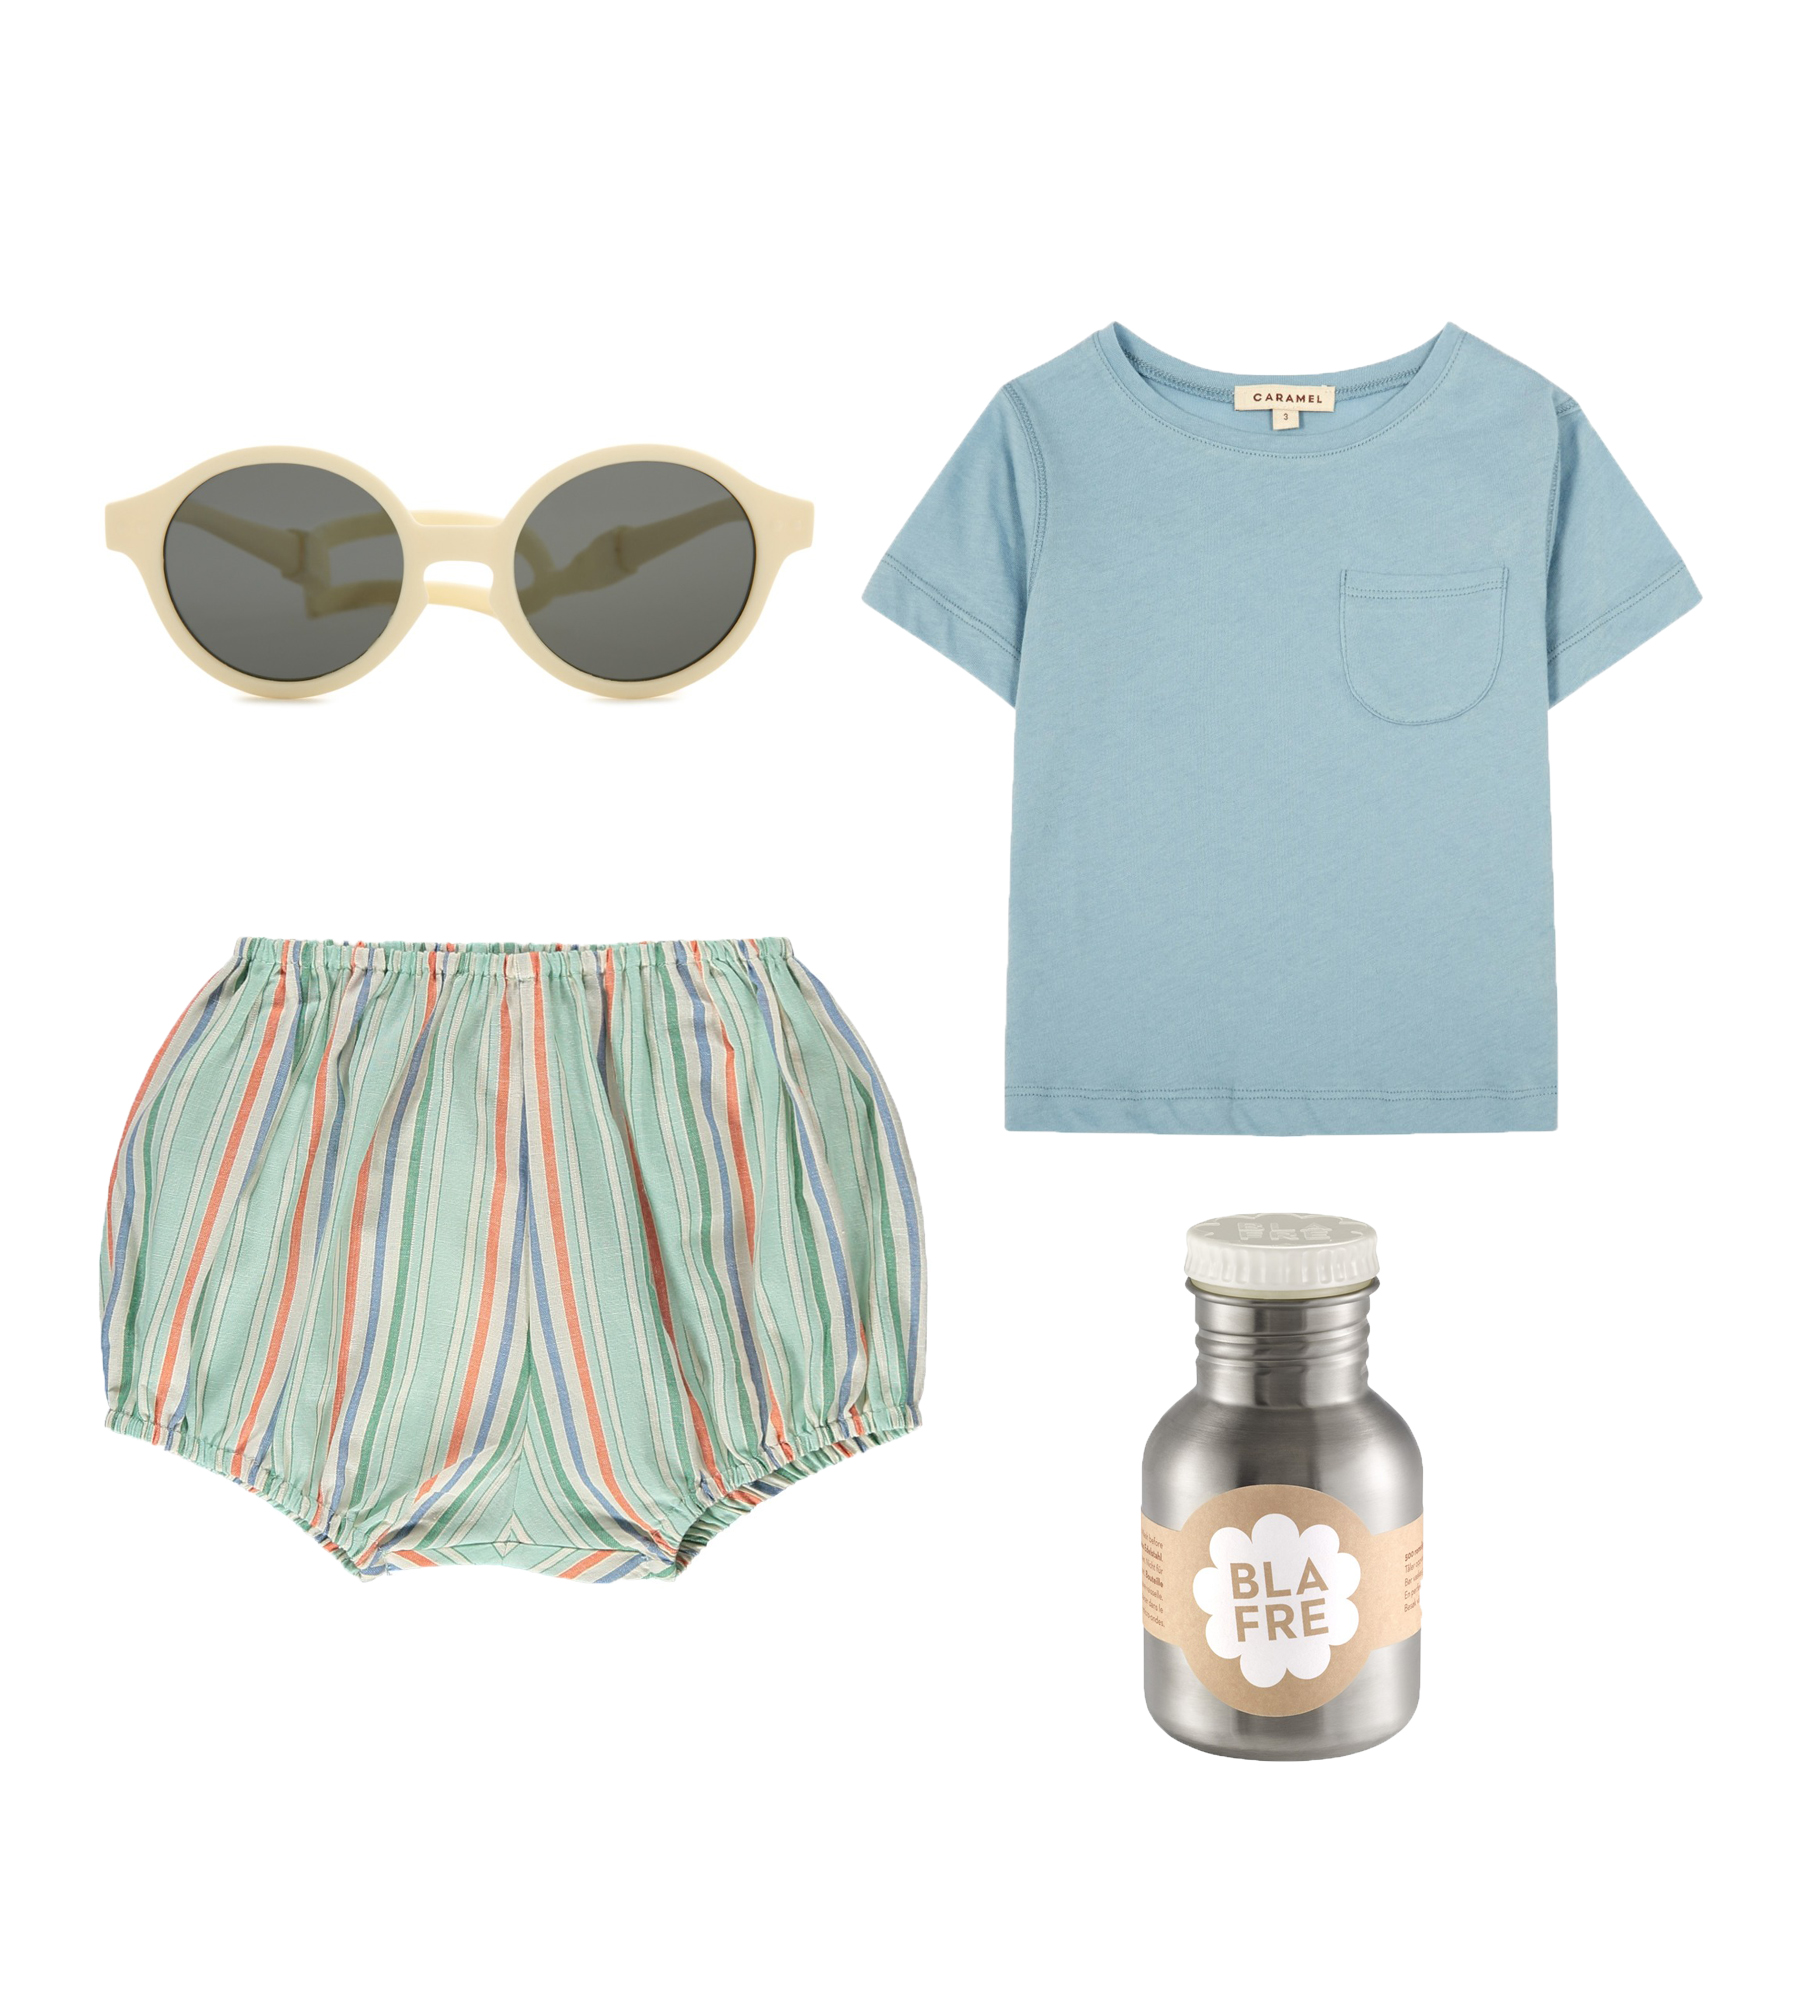 Sunglasses/ IZIPIZI  T-shirt/ CARAMEL  Bloomers/ CARAMEL  Water bottle/ BLAFRE